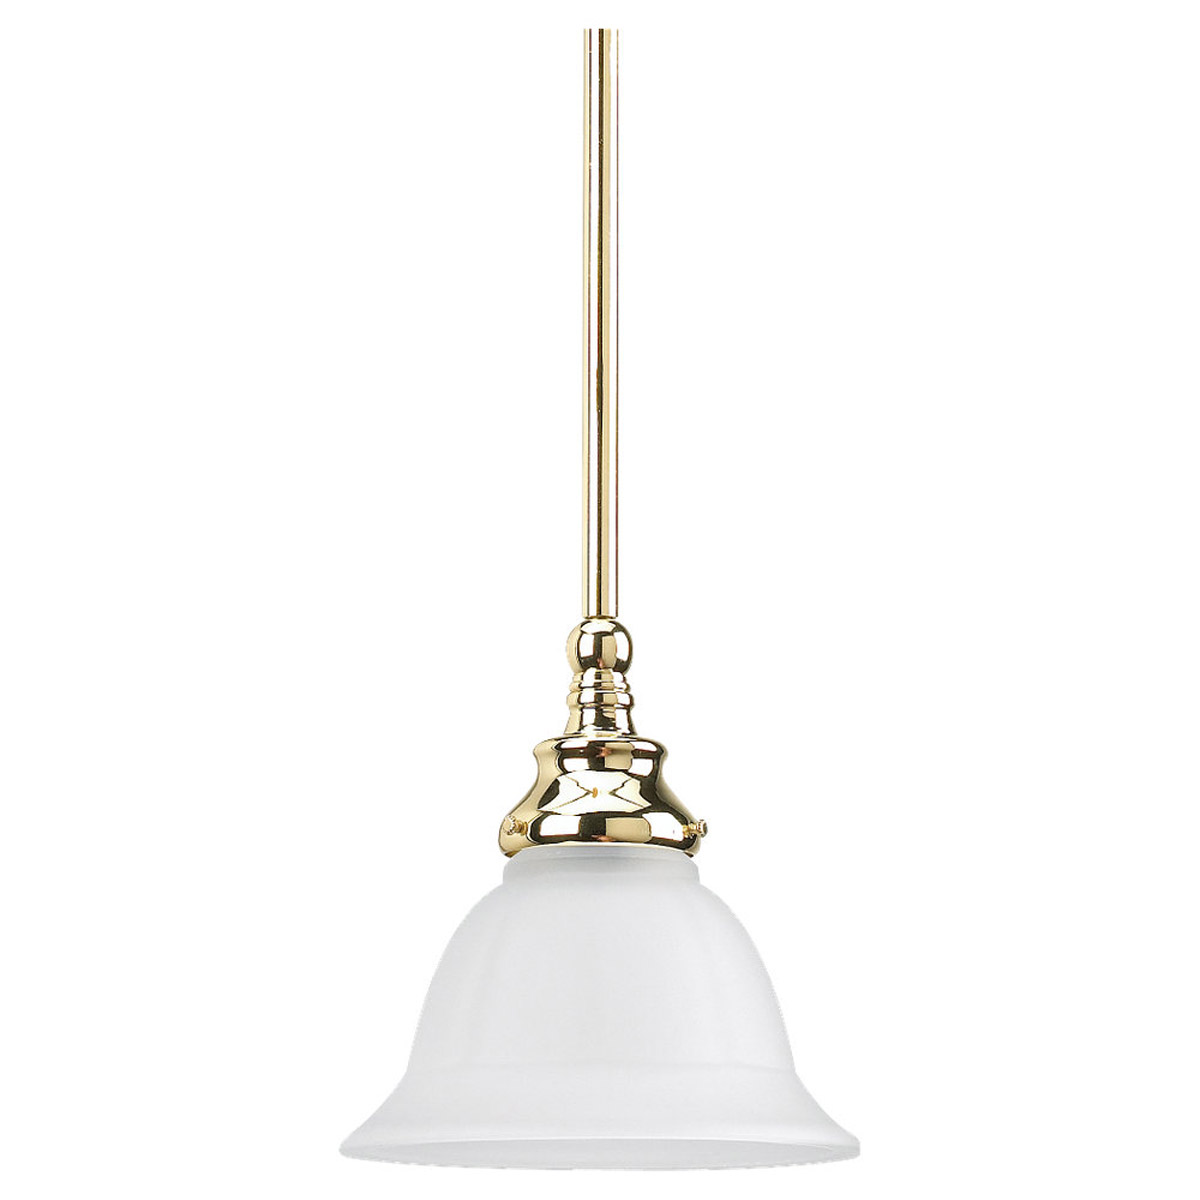 Sea Gull Lighting Canterbury 1 Light Pendant in Polished Brass 61050-02